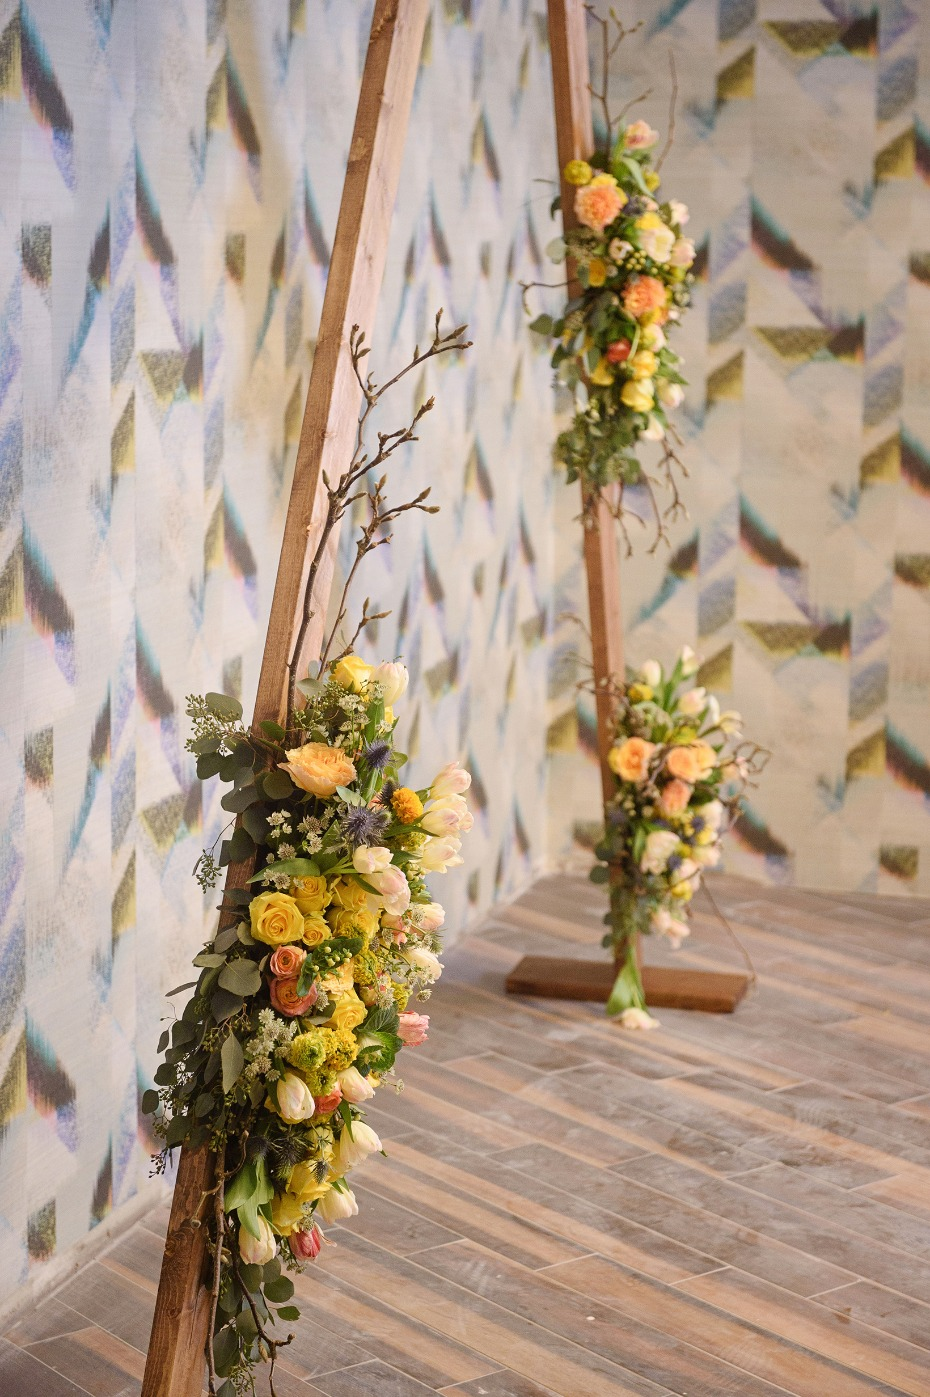 Triangle wedding arch with florals